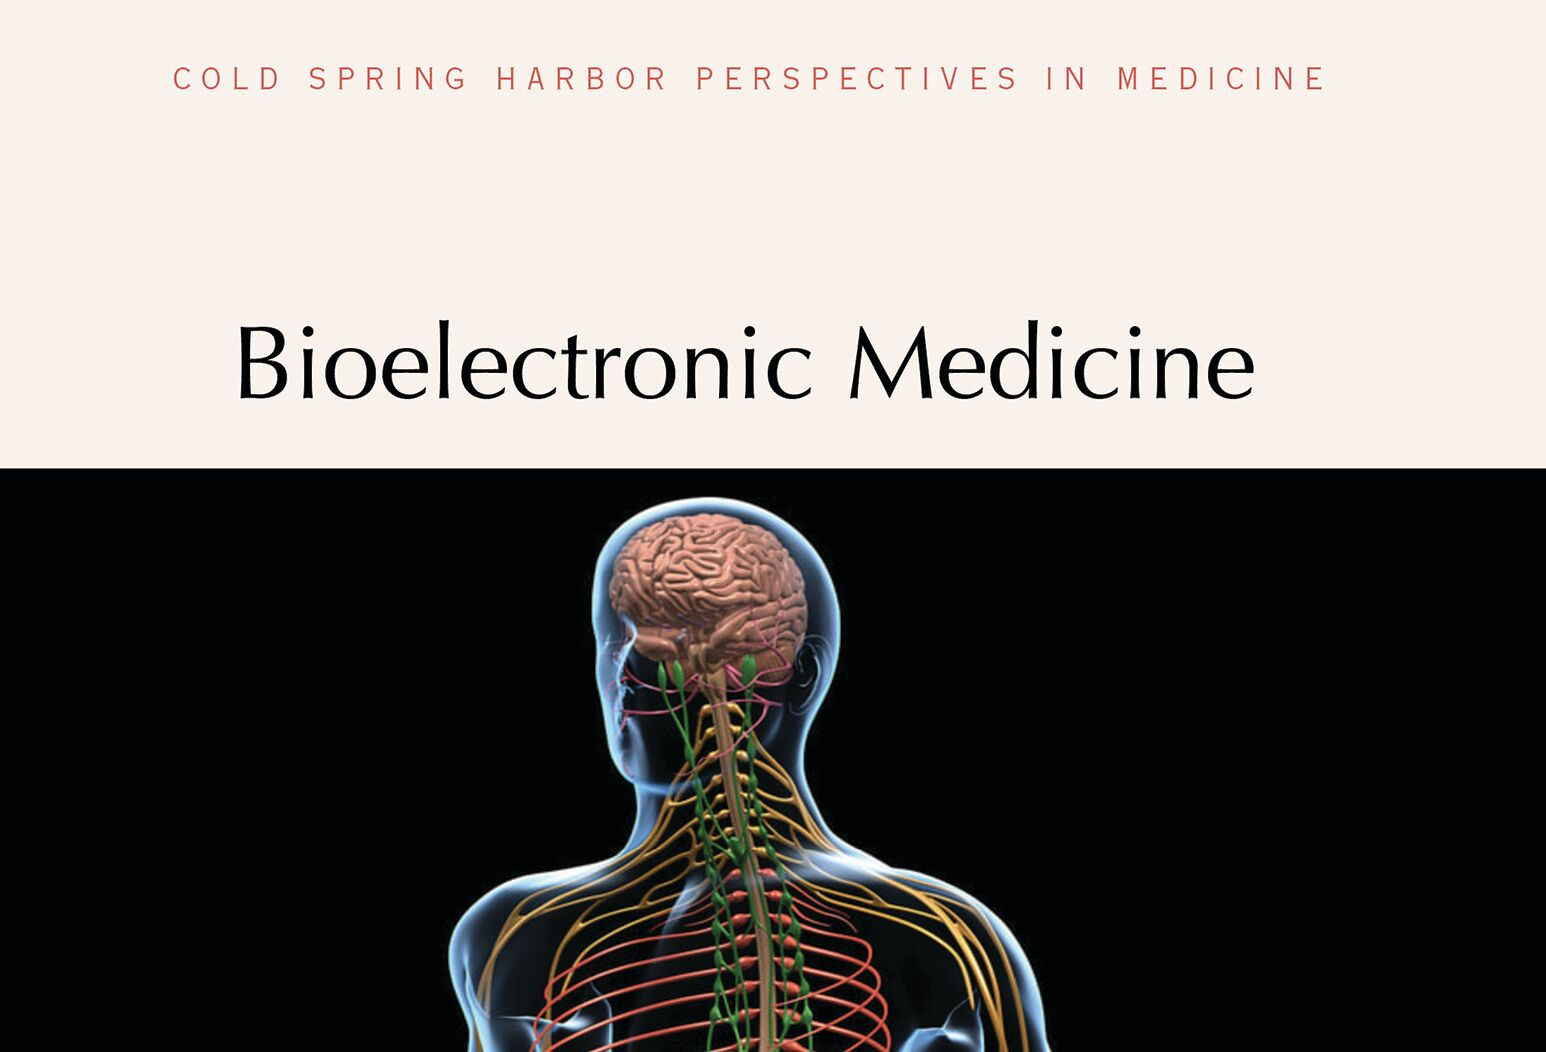 Scientists, journalists and others fascinated by the rapid developments that characterize the emergent field of bioelectronic medicine have a new resource in a book published July 25 by Cold Spring Harbor Laboratory Press.